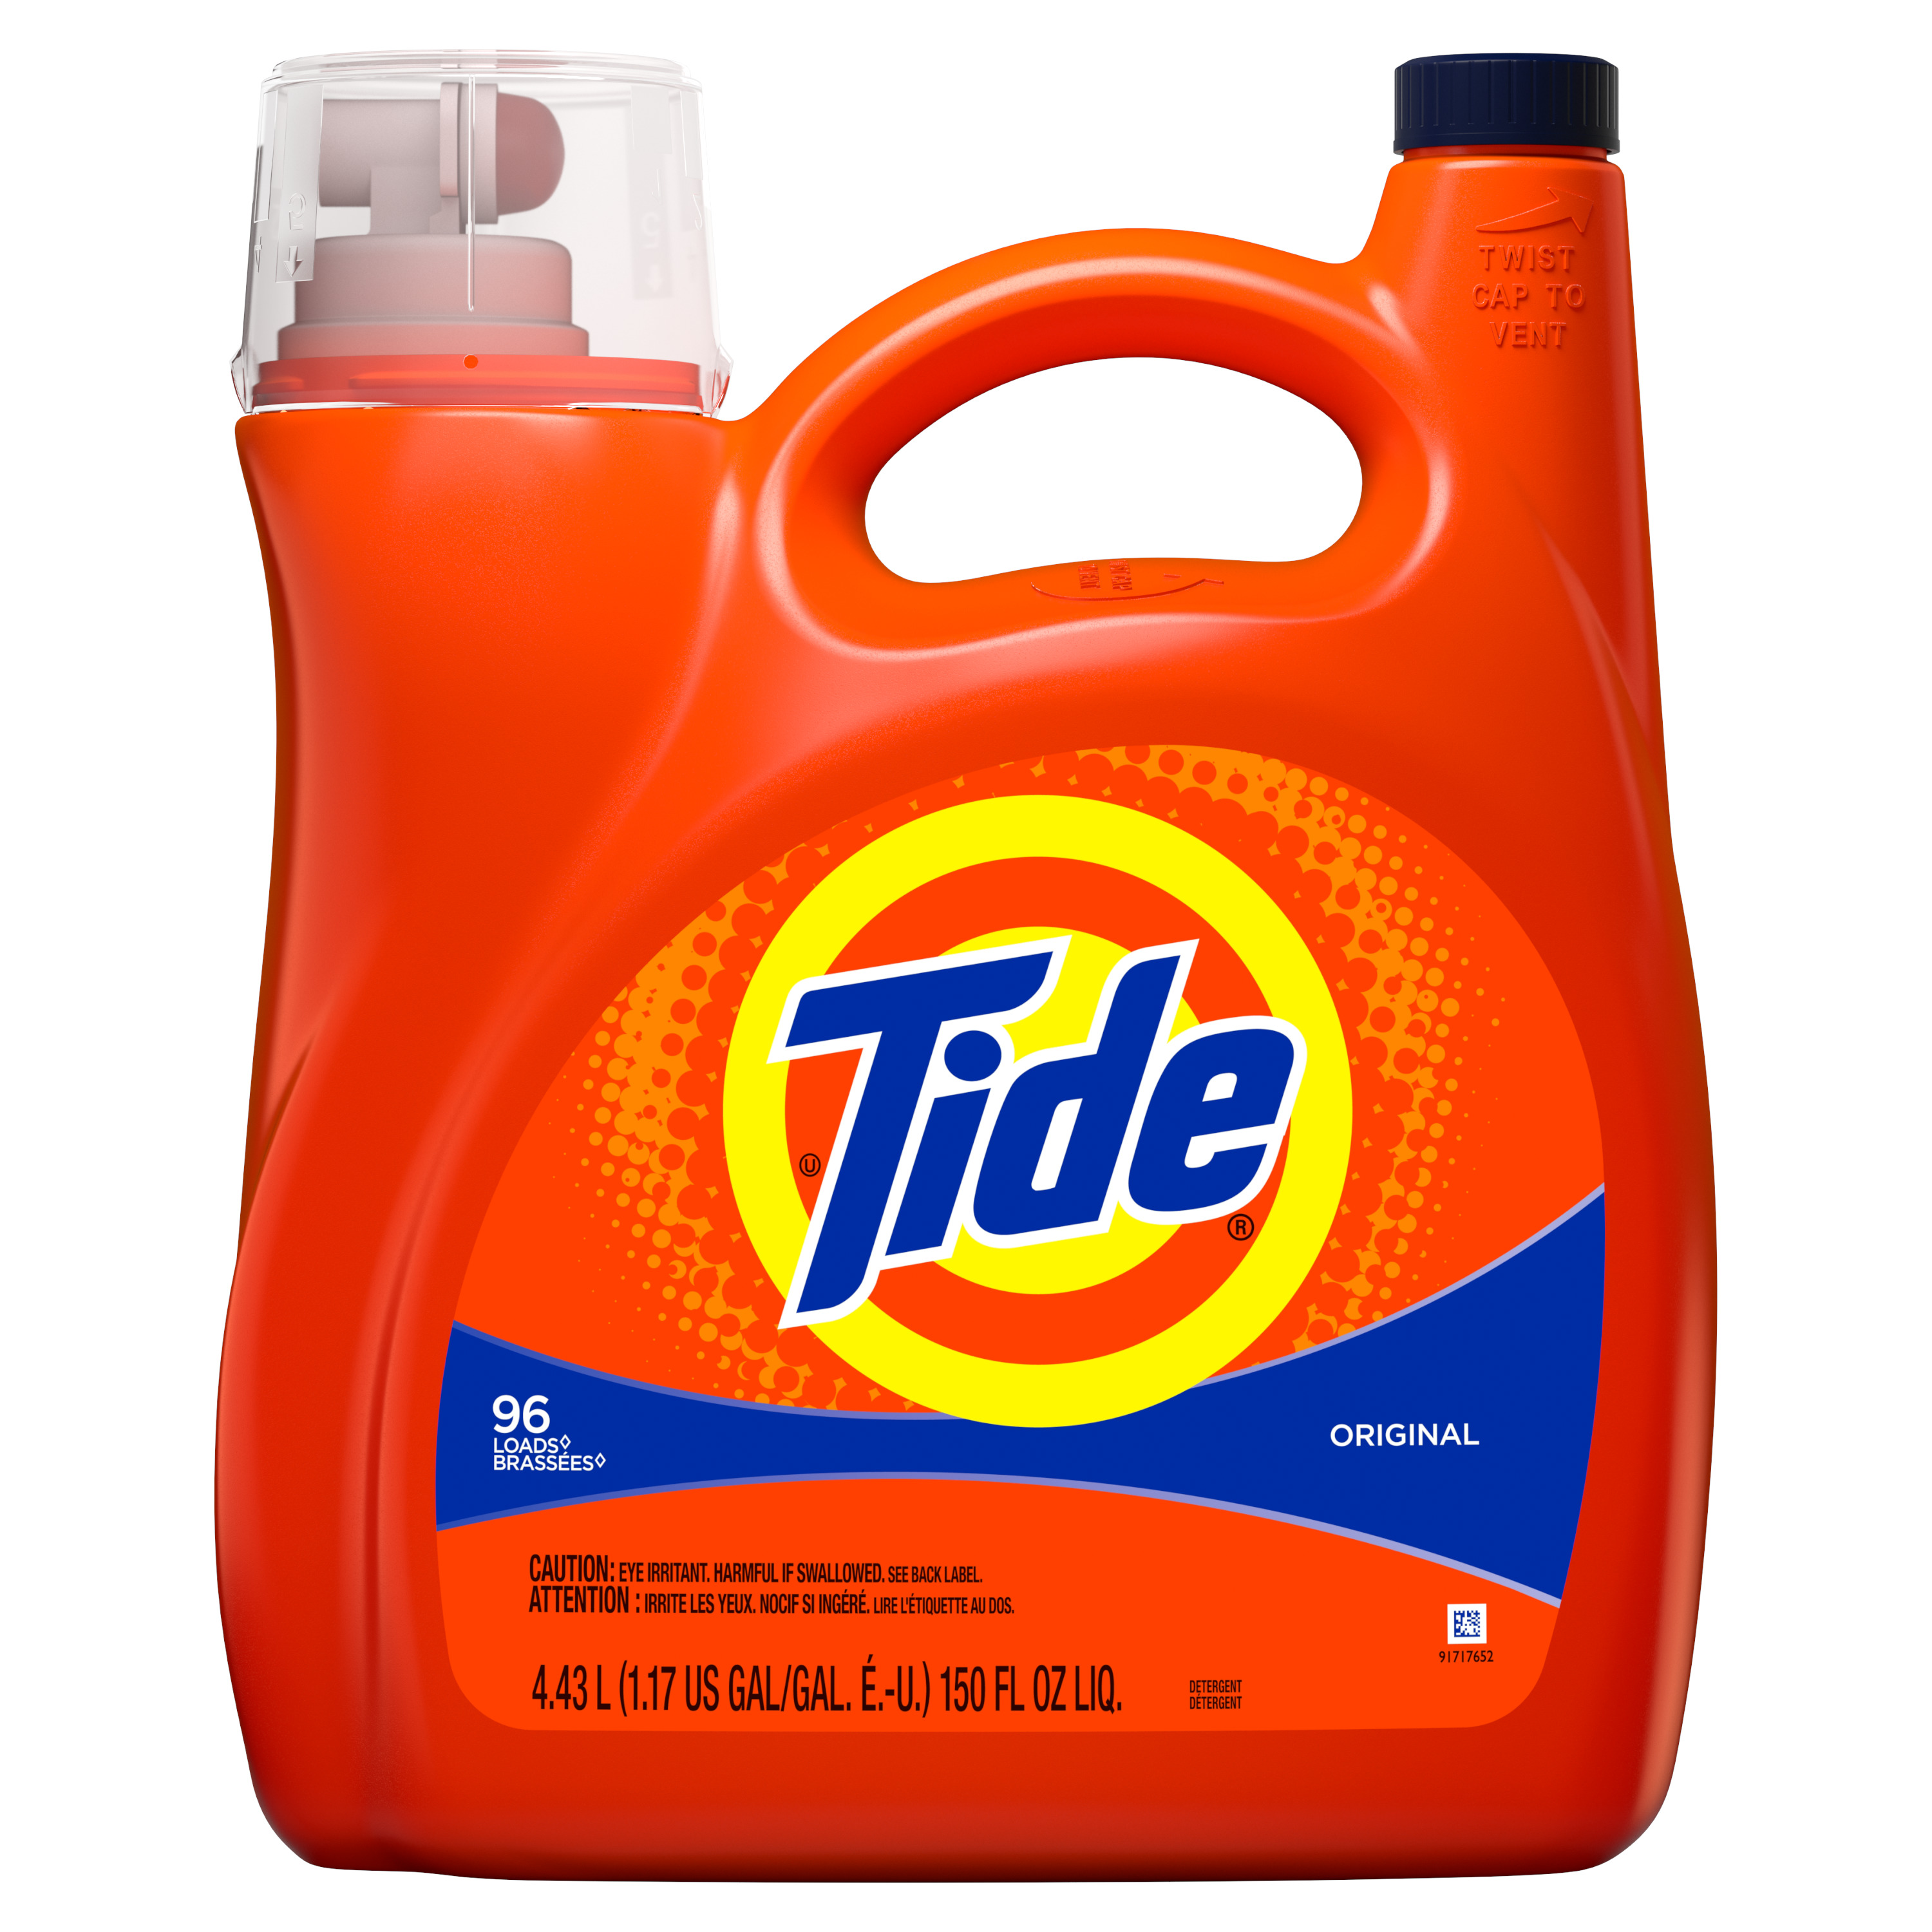 Tide Liquid Laundry Detergent, Original, 96 Loads 150 fl oz